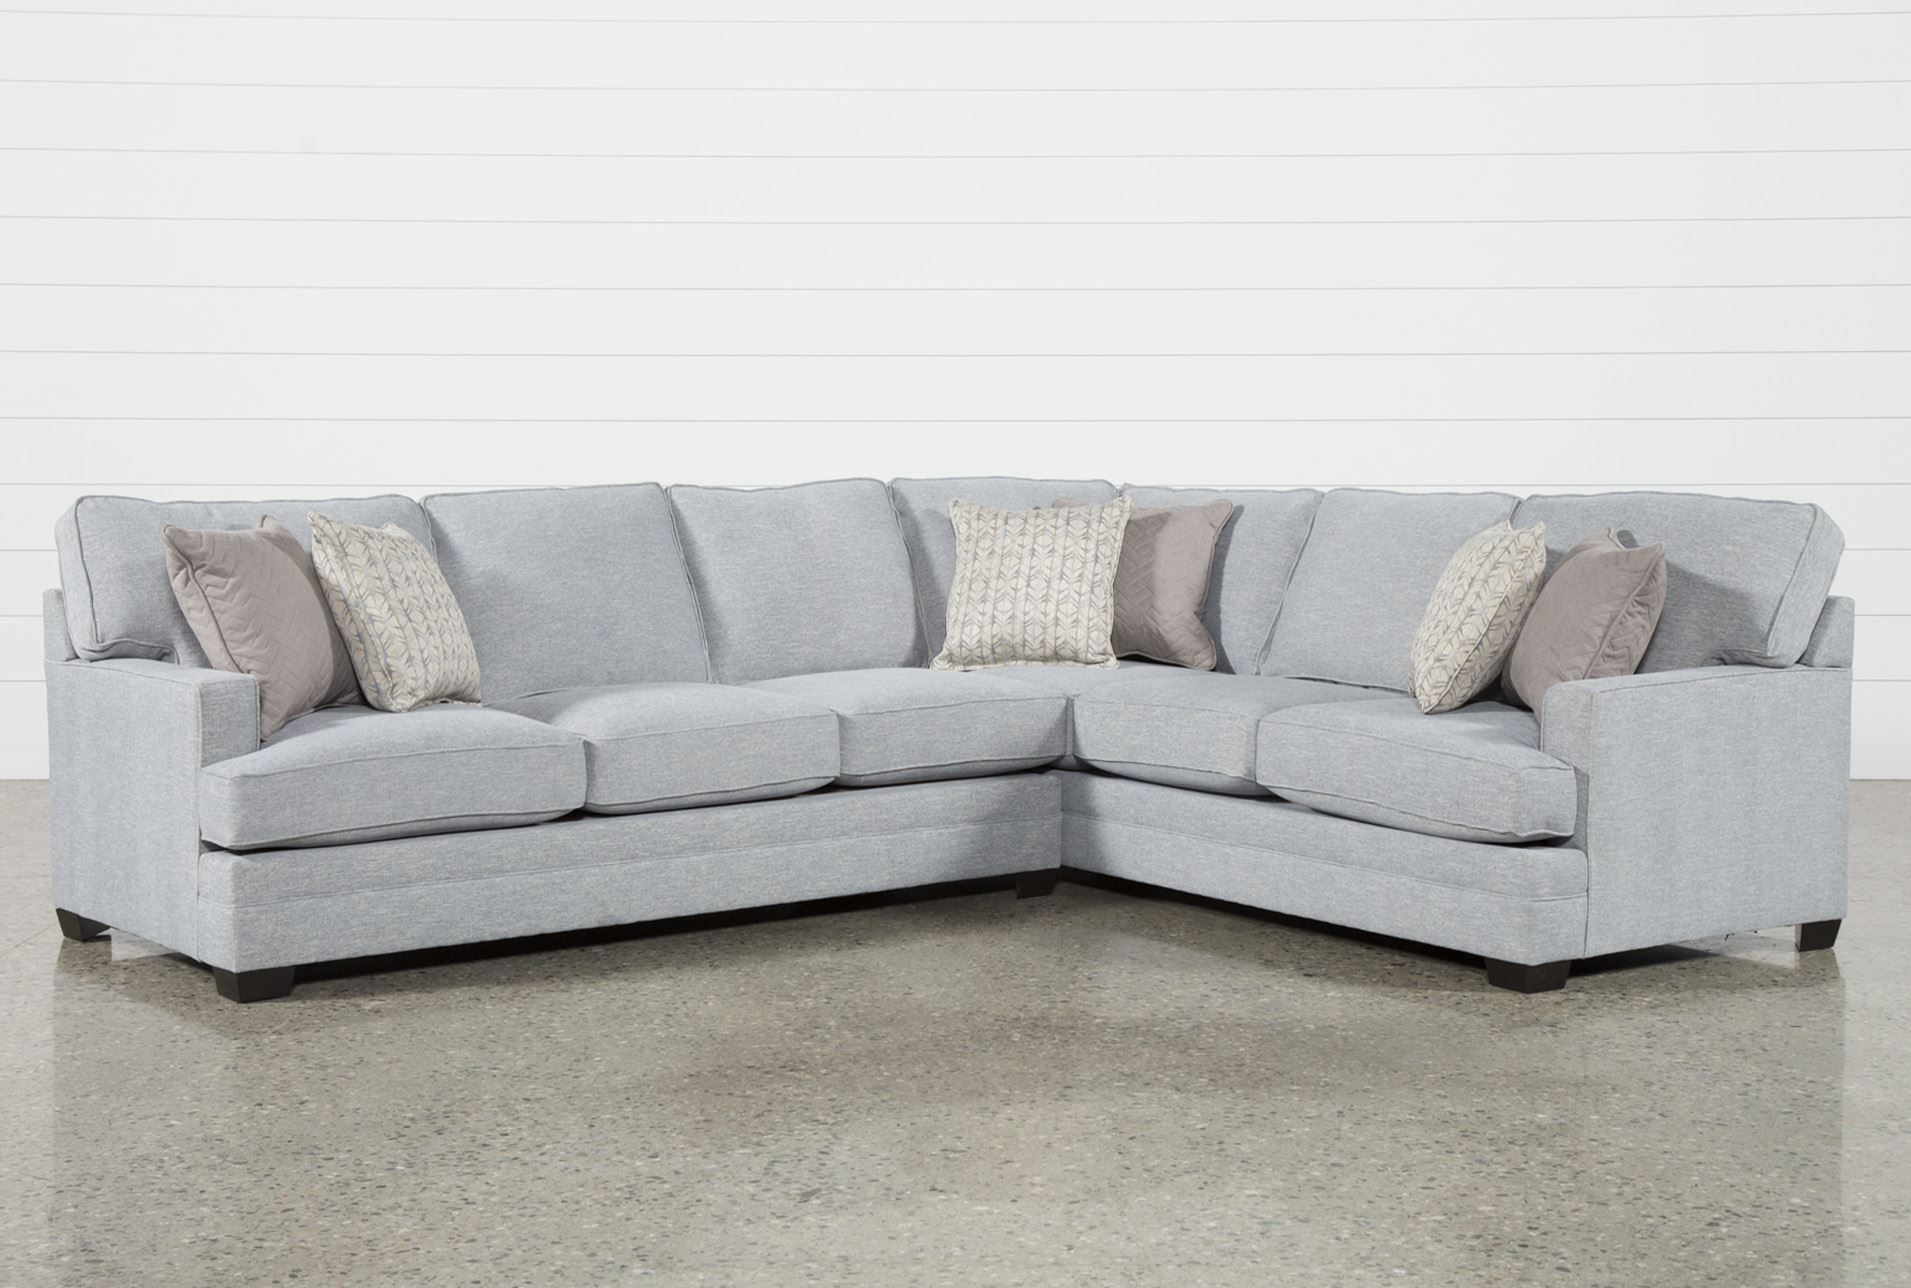 Josephine 2 Piece Sectional W/laf Sofa | Decorating And Interiors in Kerri 2 Piece Sectionals With Raf Chaise